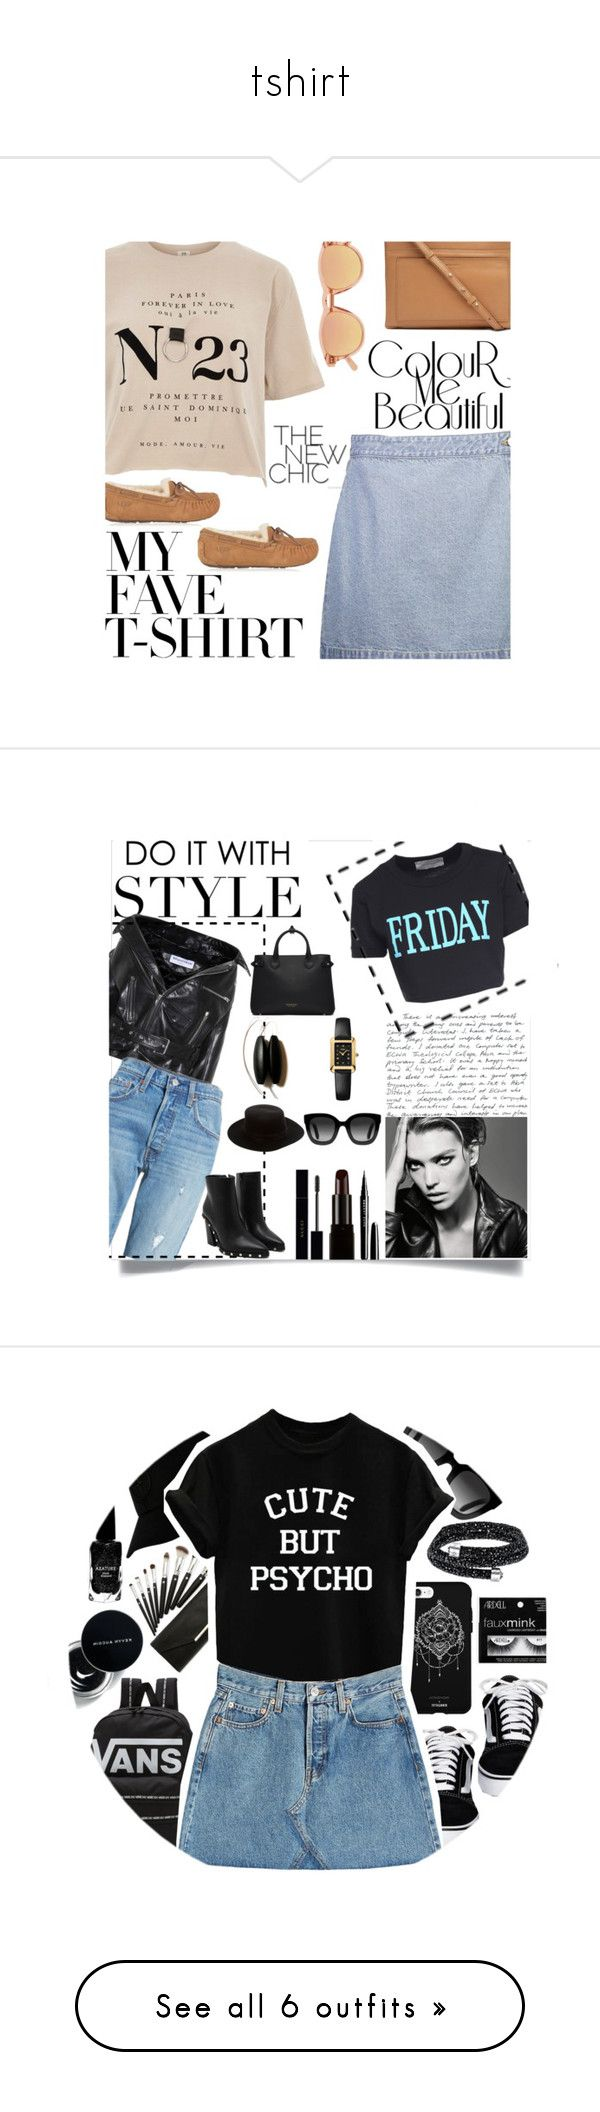 """tshirt"" by smillafrilla ❤ liked on Polyvore featuring Witchery, River Island, UGG, Chimi, MyFaveTshirt, Gucci, STONE ISLAND, Fifth & Ninth, Vans and Azature"